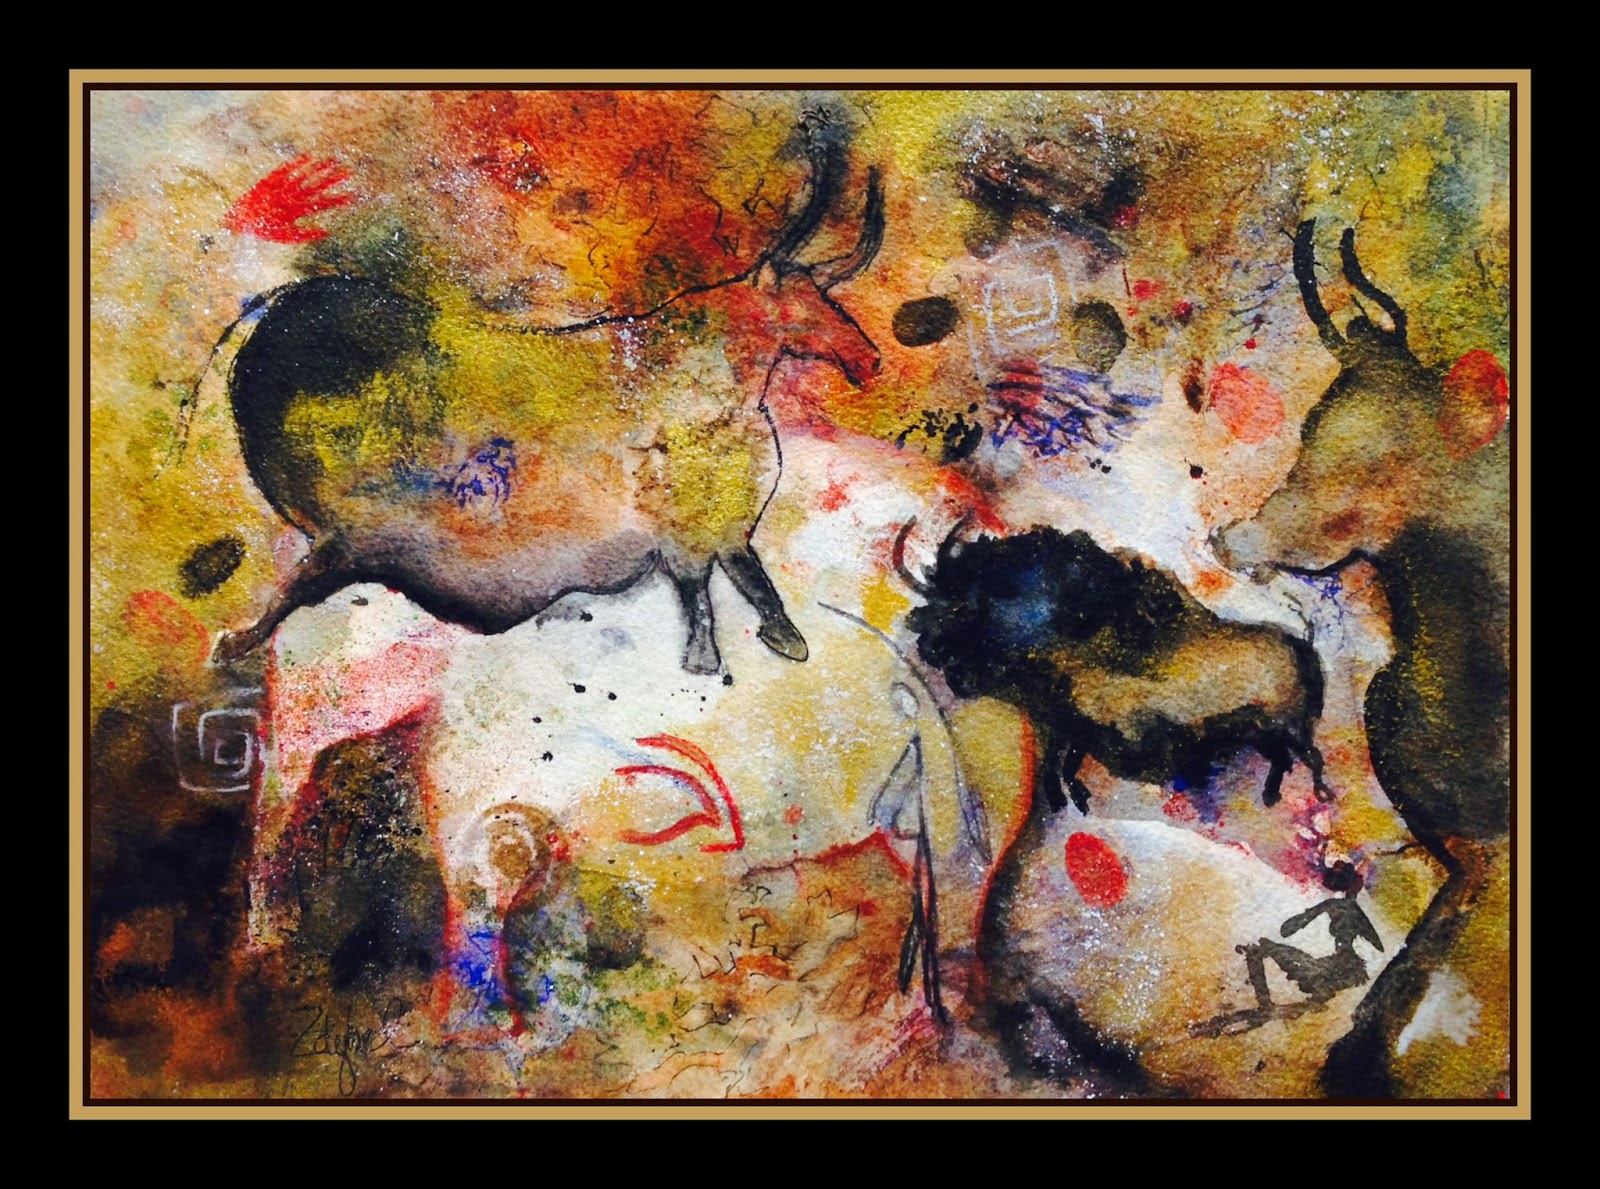 Man Cave Show Myrtle Beach : Cave art mystery rebecca zdybel myrtle beach artist